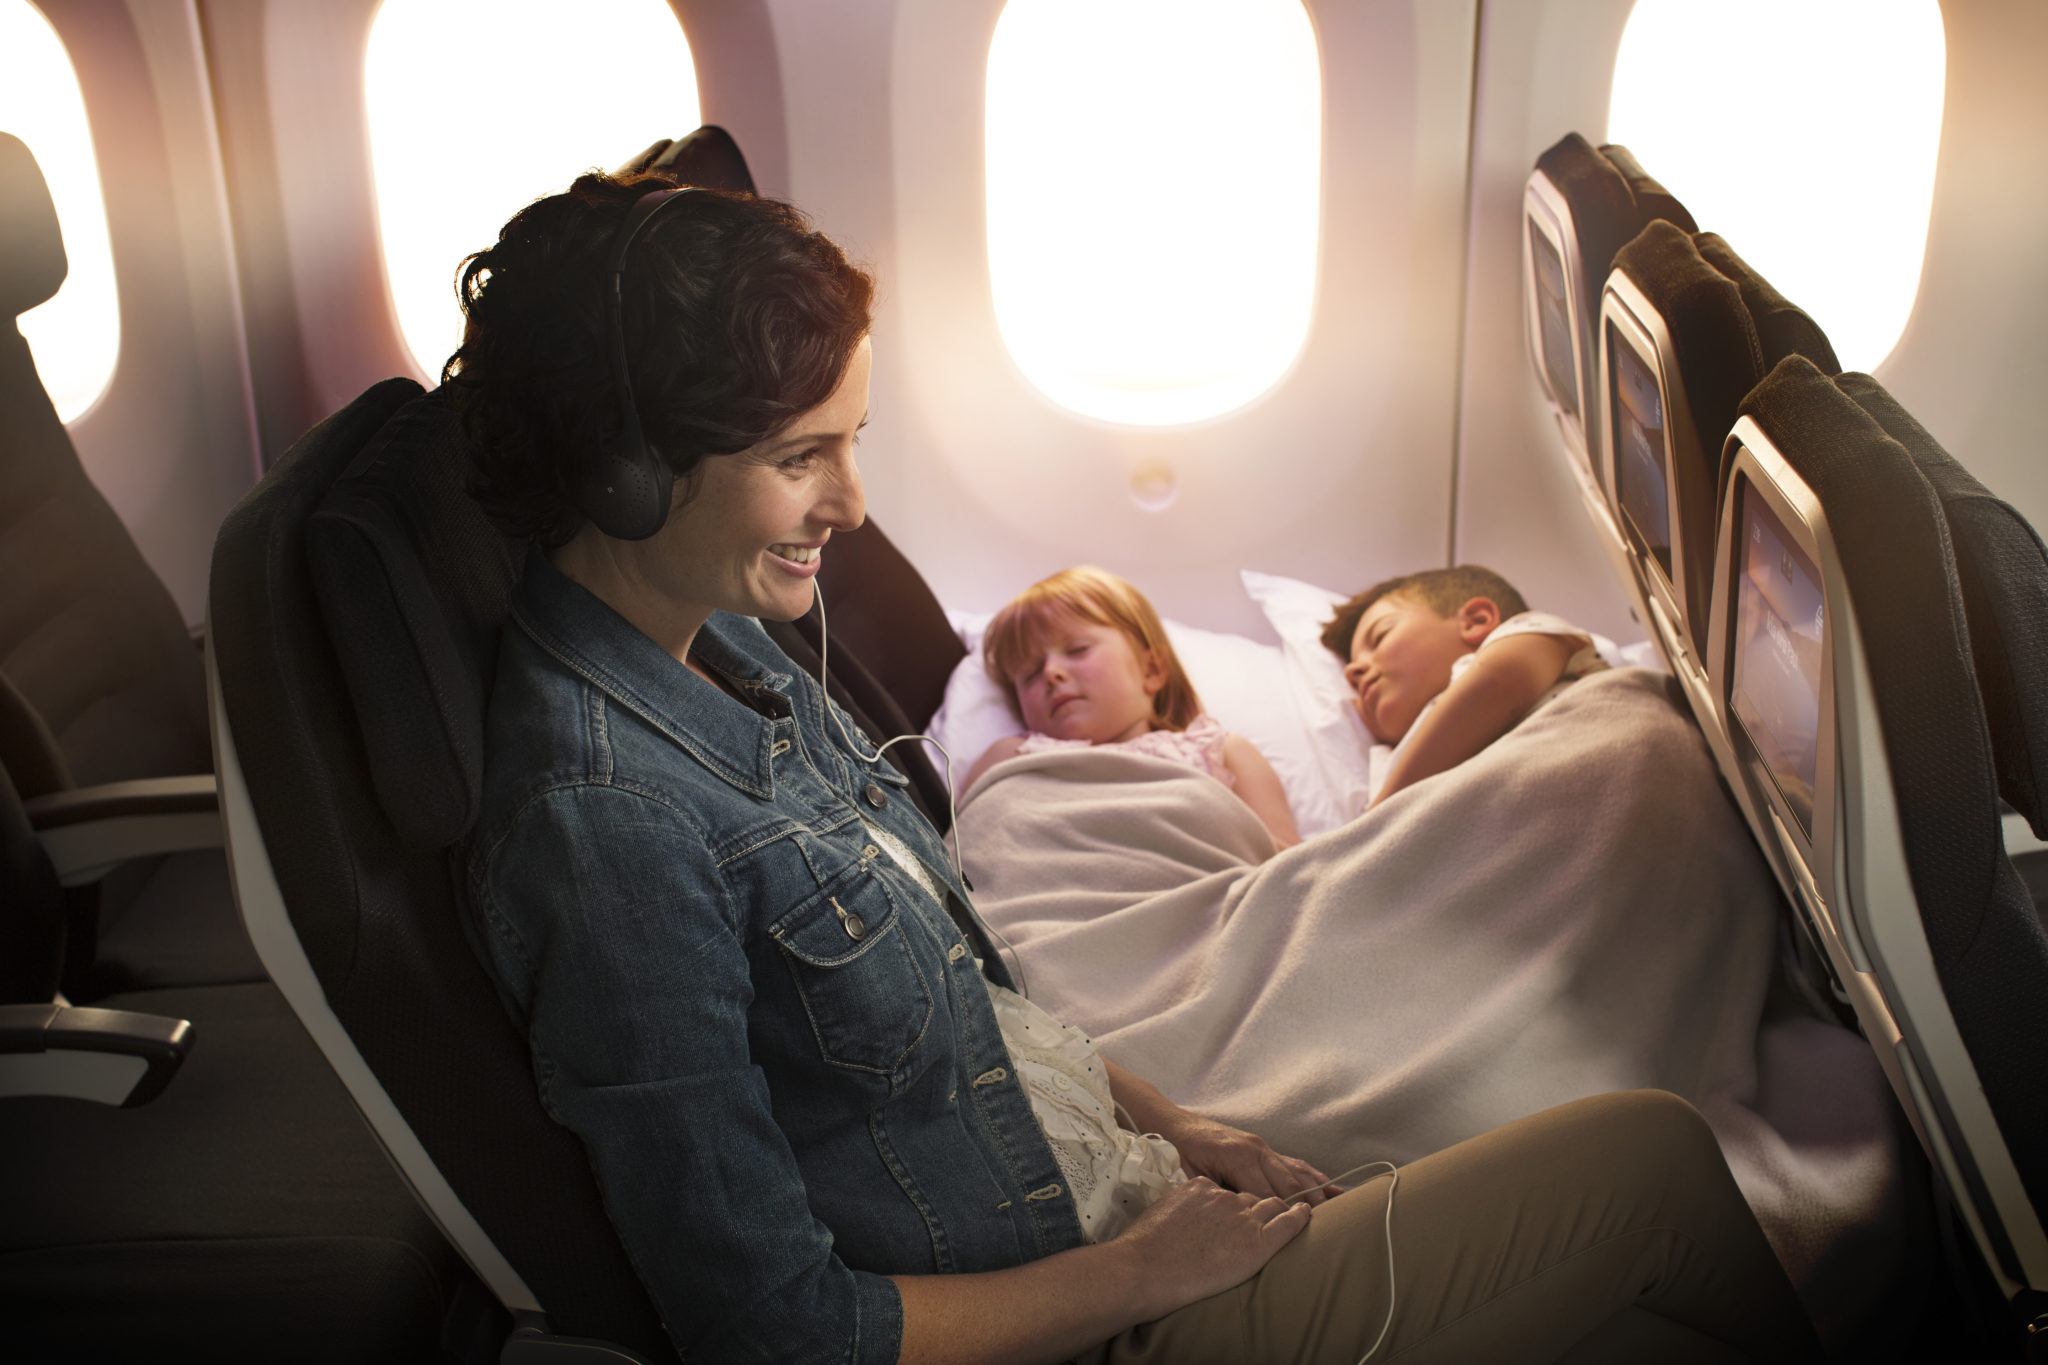 Air Nz Explains New Comfort And Safety Options For Infants And Children Runway Girlrunway Girl